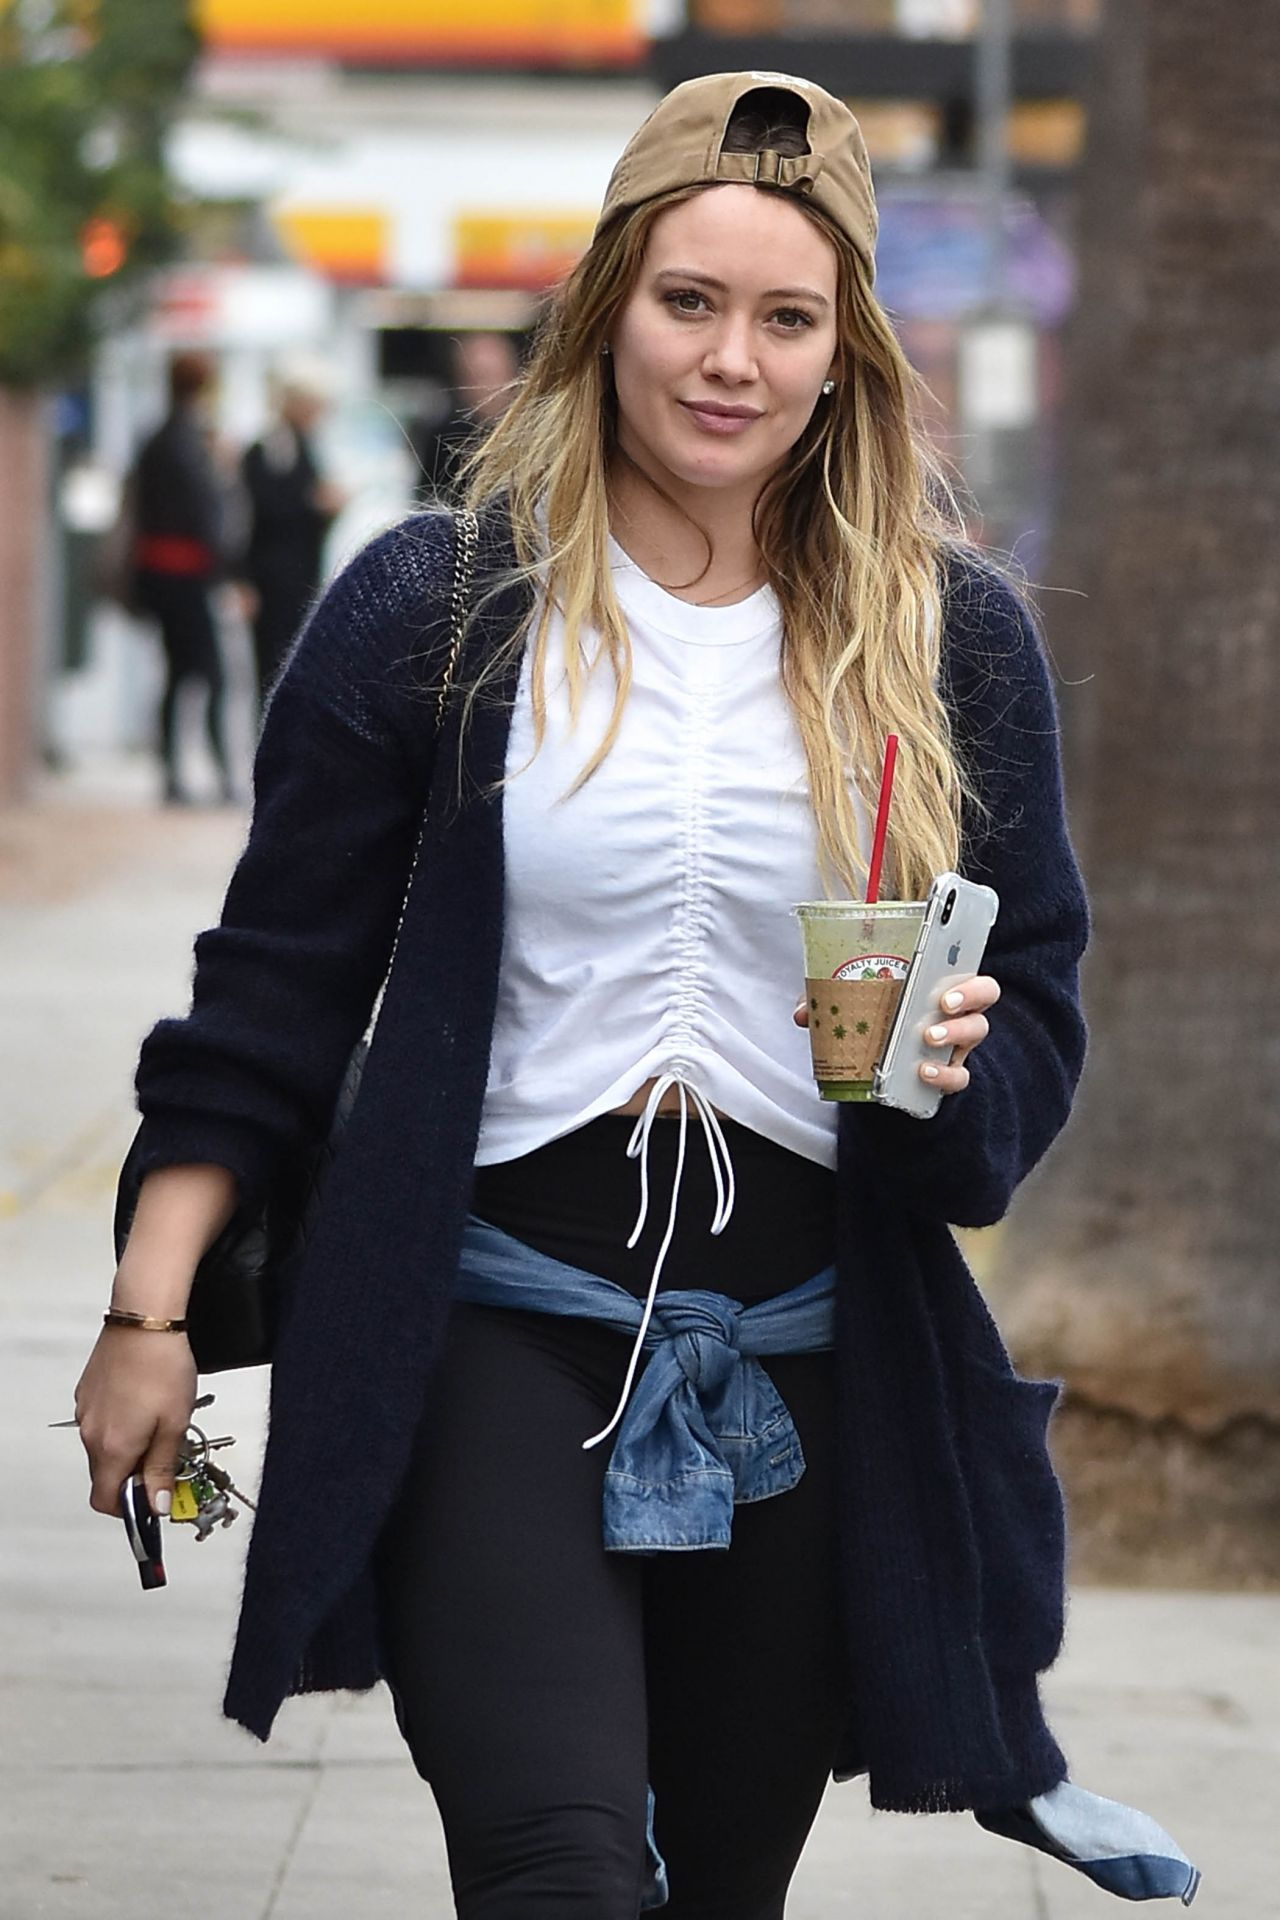 Hilary Duff Leaves Lunch at Joan's on Third in Studio City хилари дафф